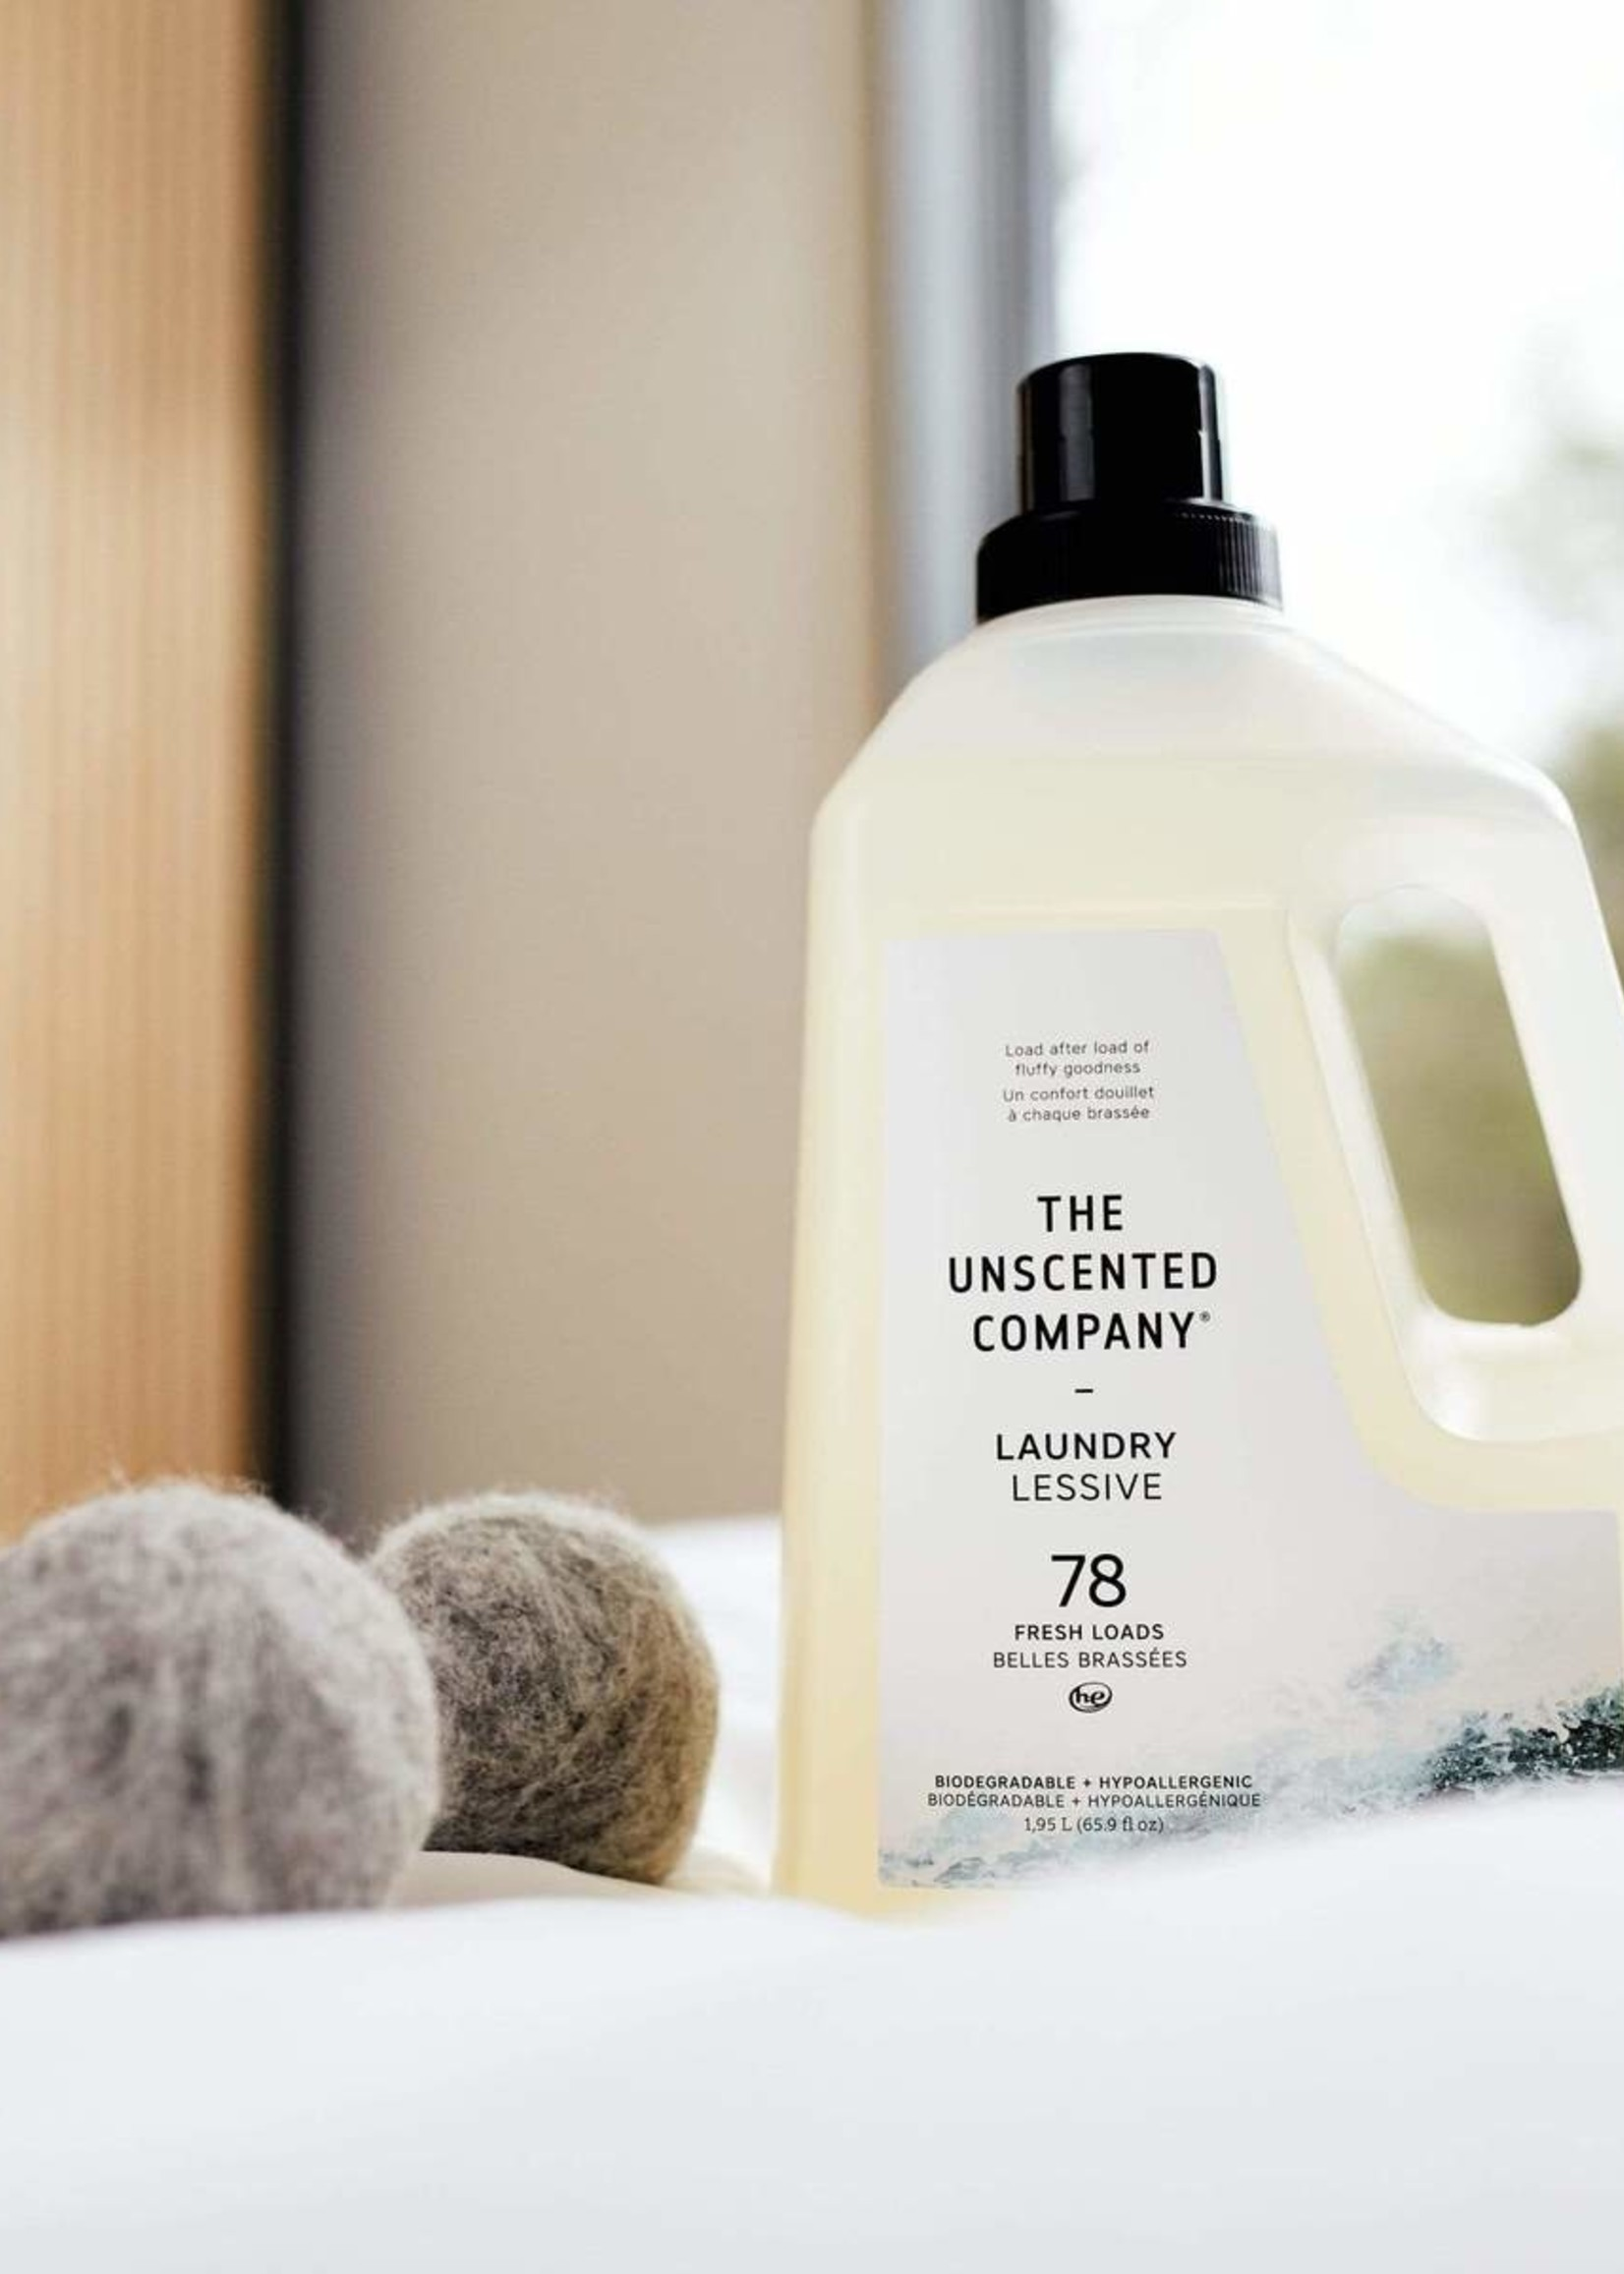 The Unscented Company Laundry Detergent